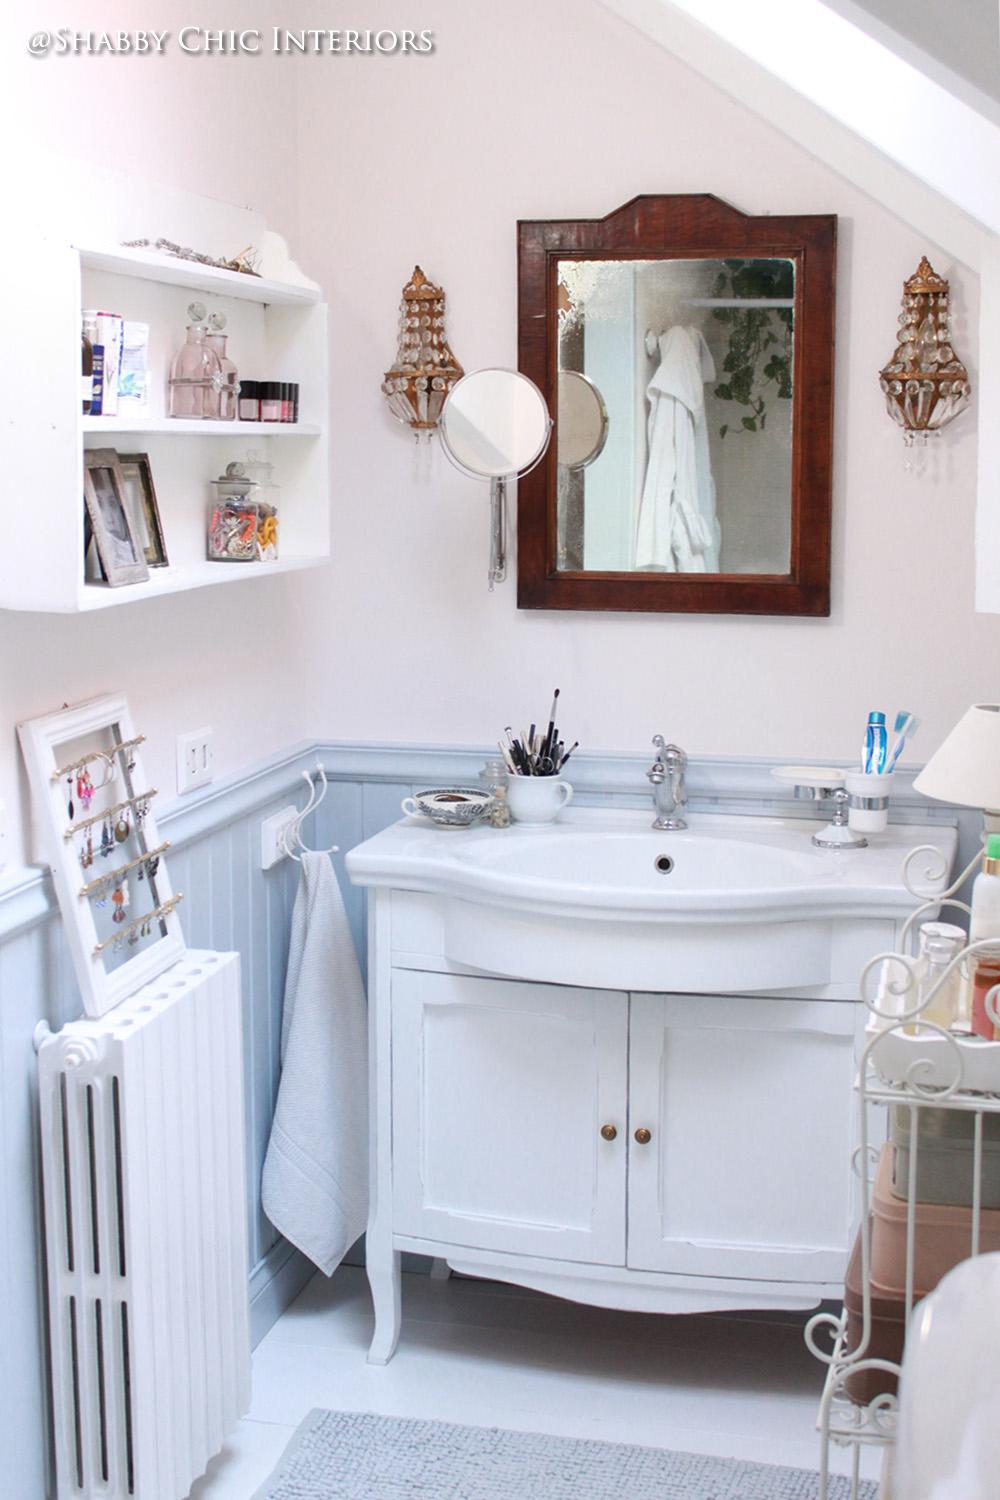 Shabby Chic Interiors: My Home | Bathroom | Pinterest | Bagno, Bagni ...